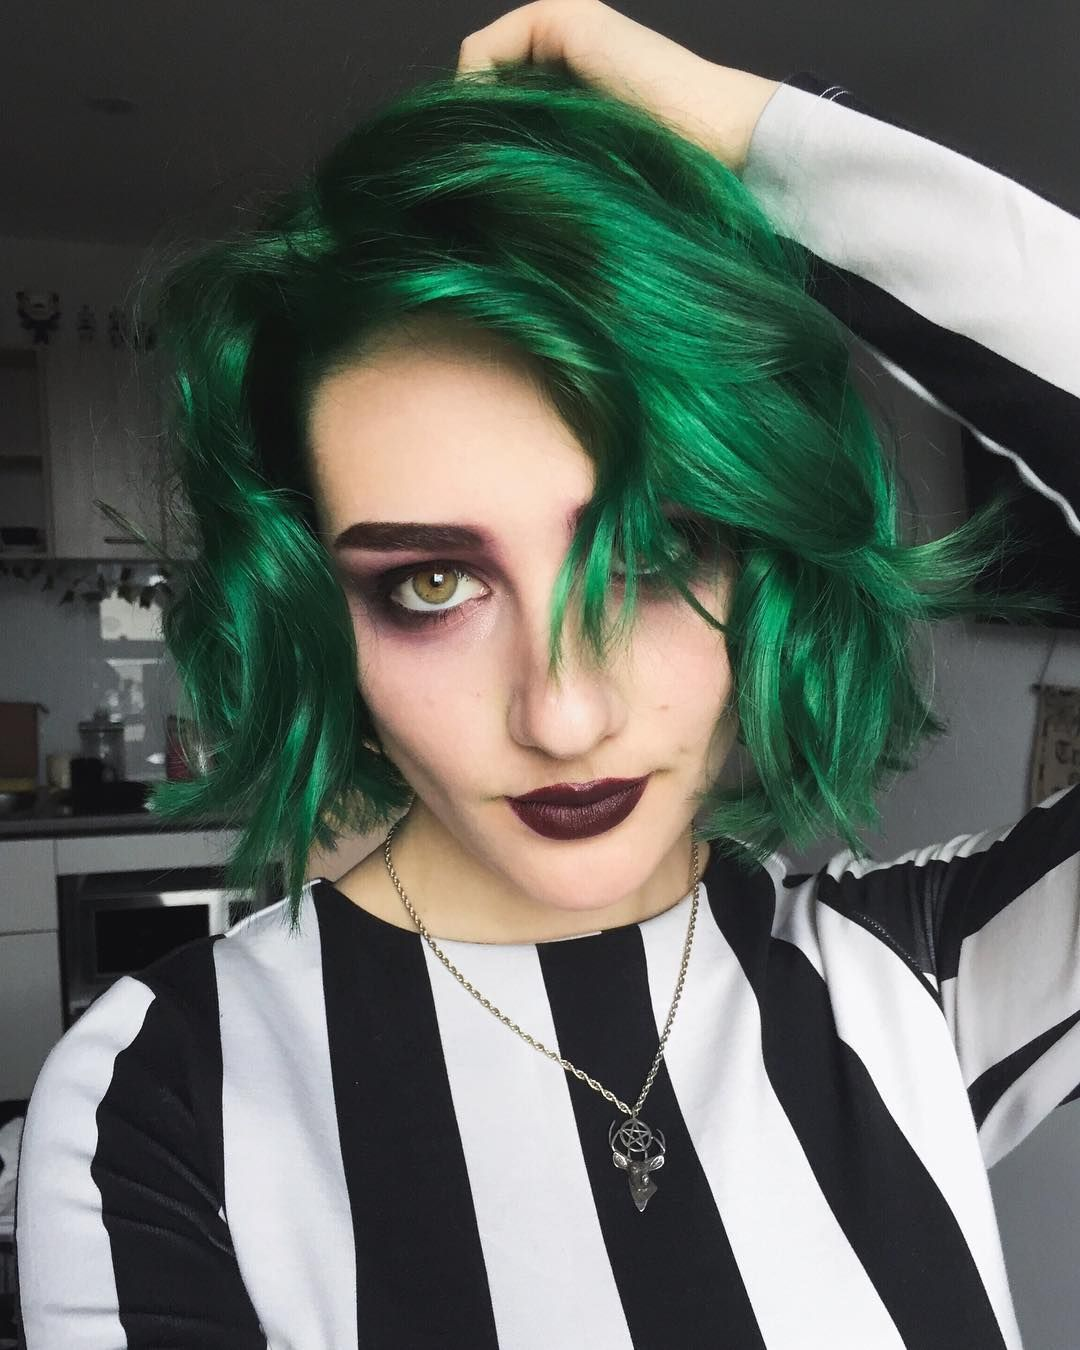 It S Showtime I Keep Forgetting That My Hair Is Green And Whenever I See My Reflection I Transcend Into A Green Hair Hair Color For Black Hair Halloween Hair